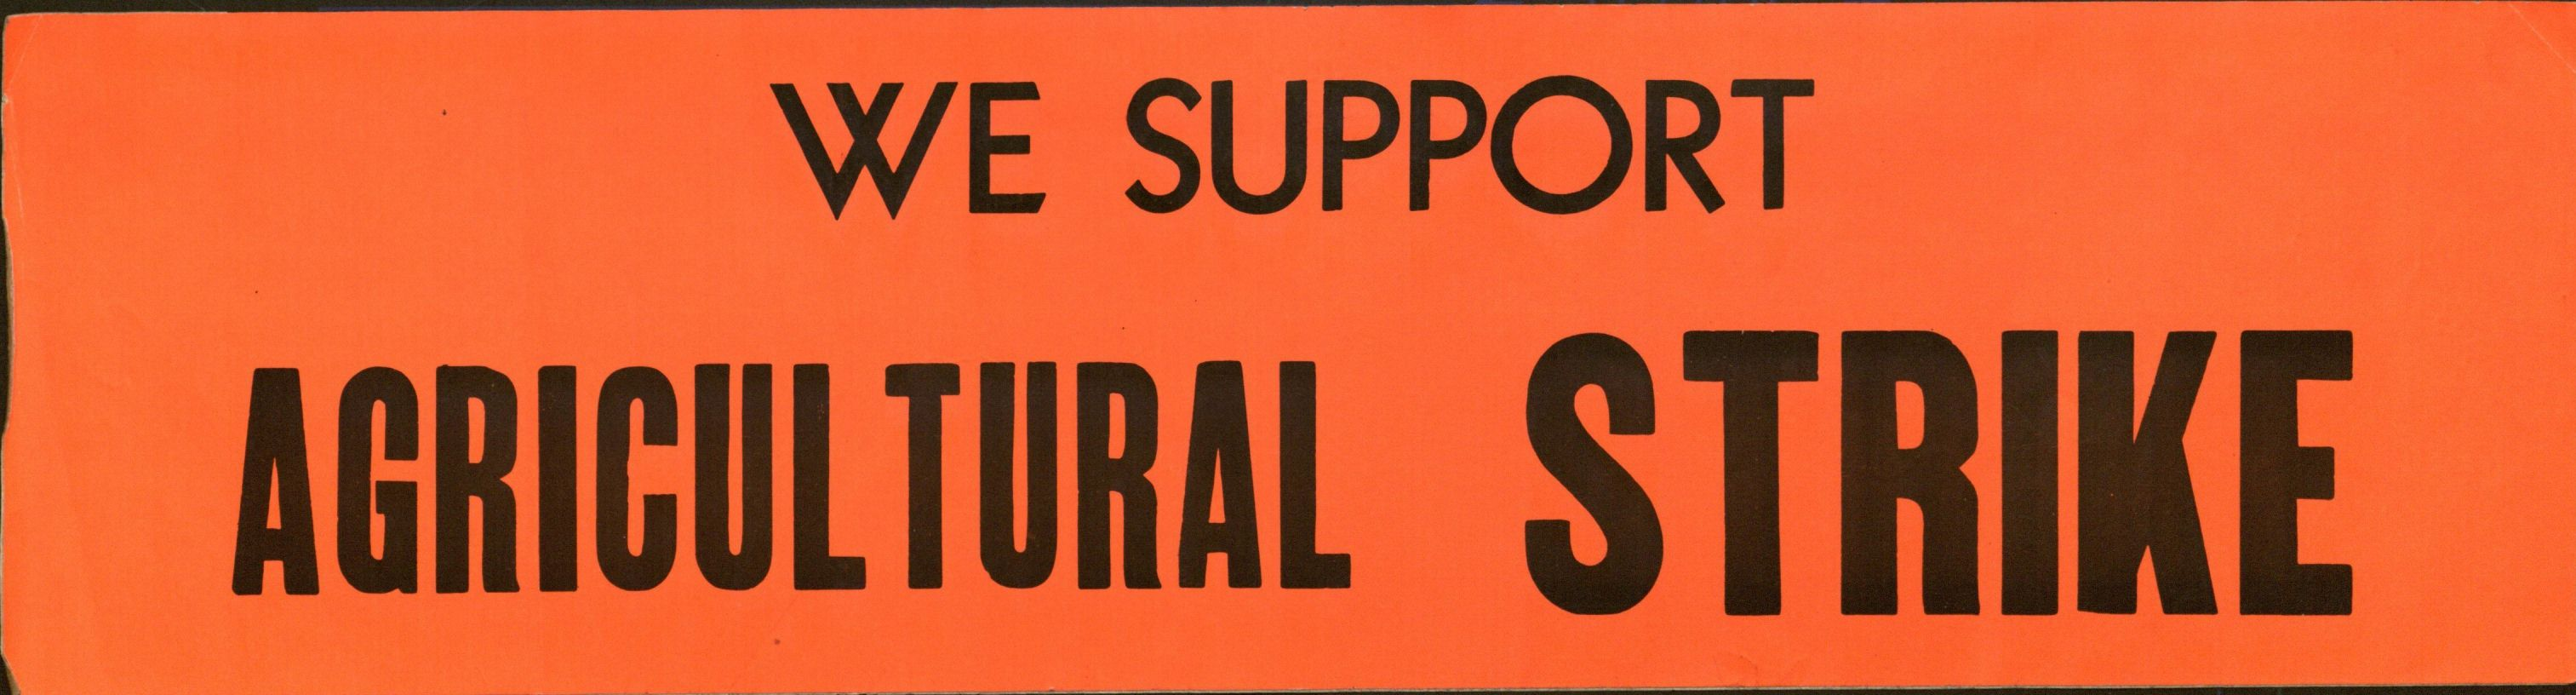 Bumper Sticker: We Support Agricultural Strike.